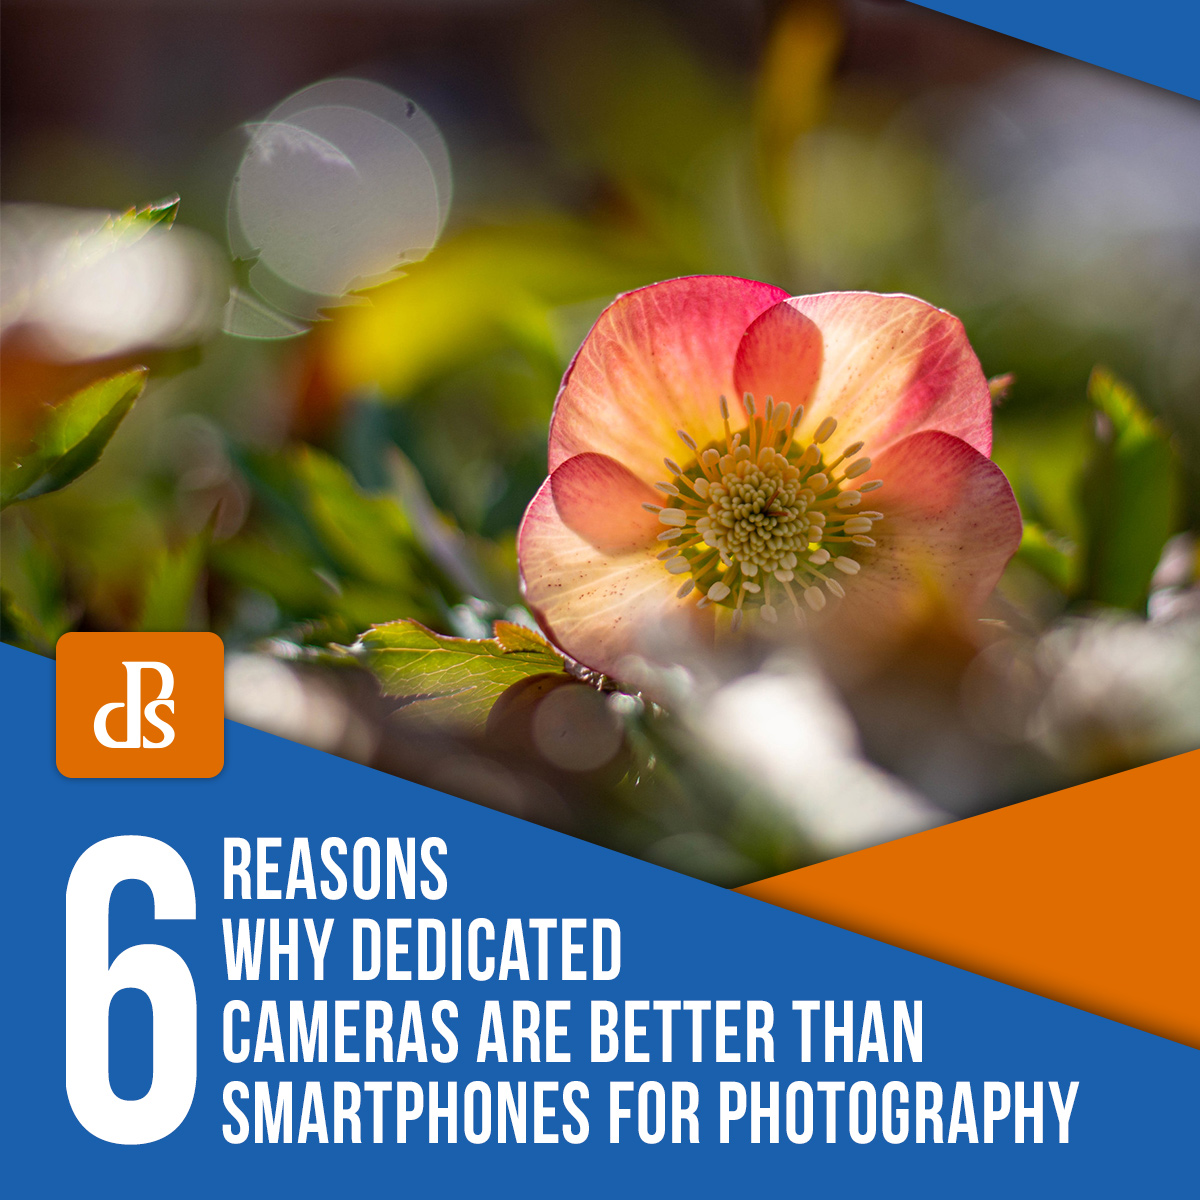 6 Reasons Why Dedicated Cameras are Better than Smartphones for Photography